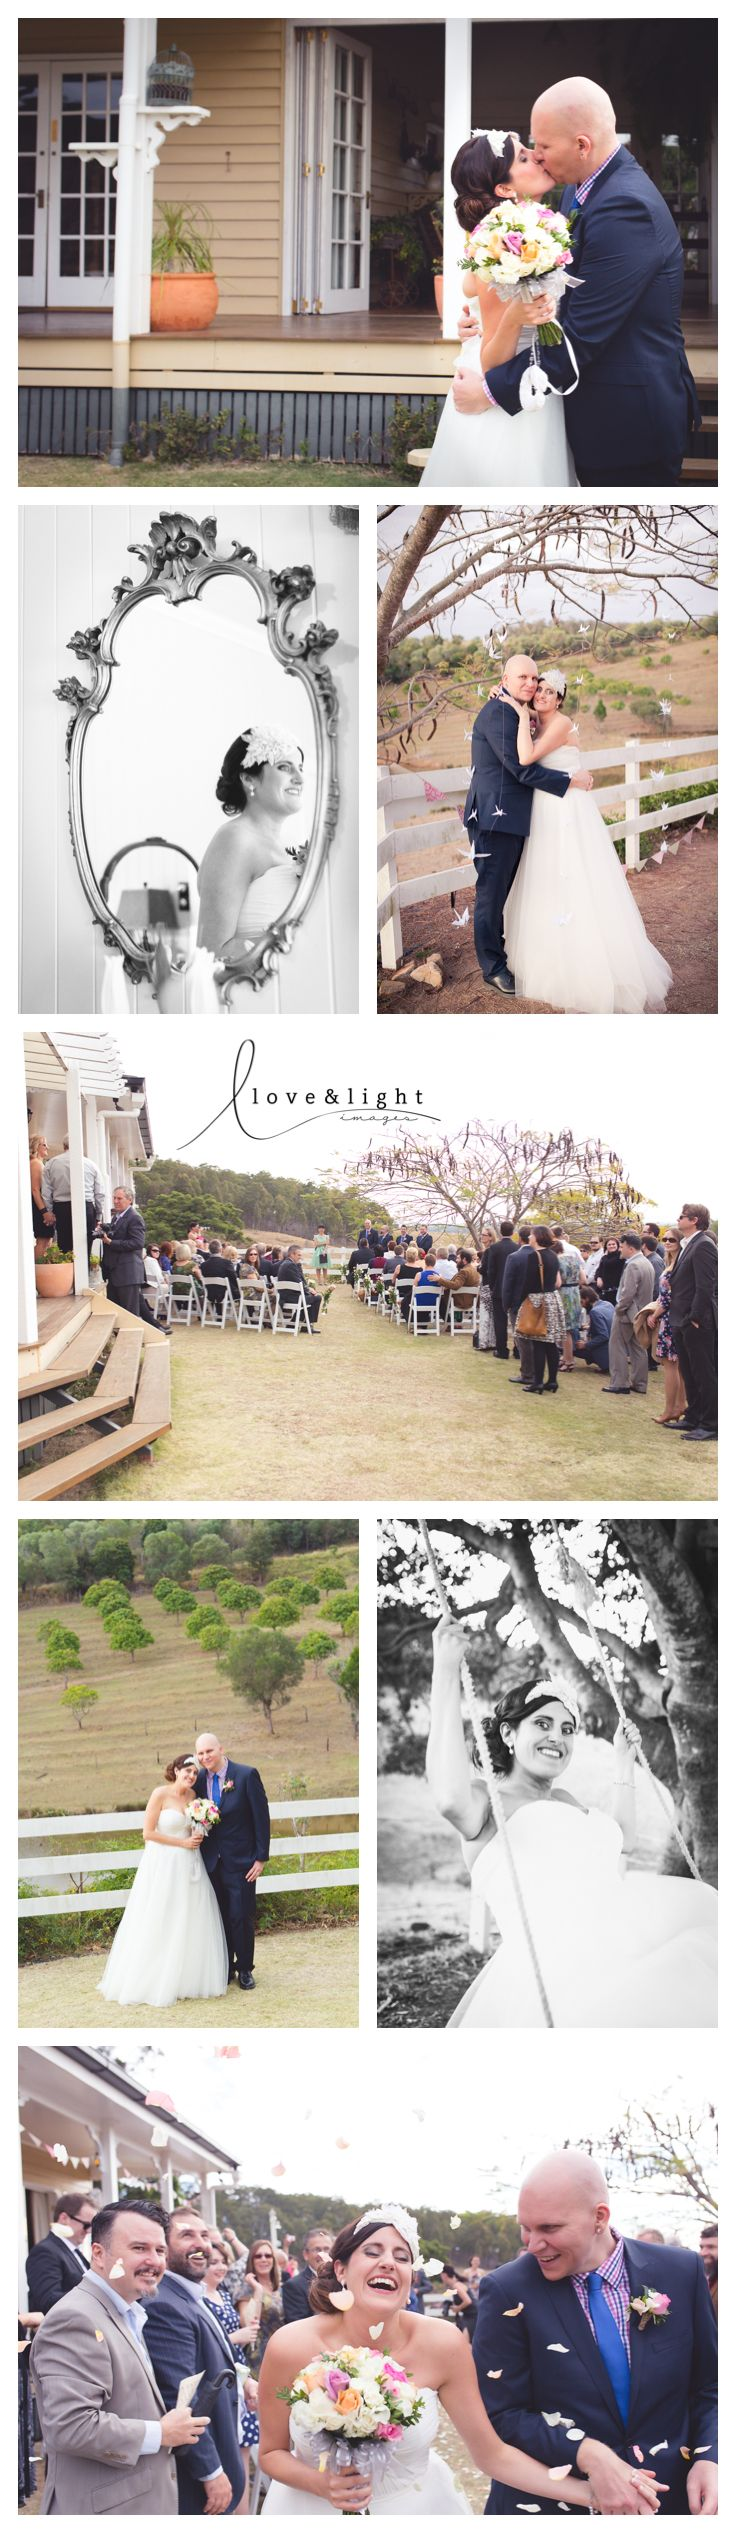 Branell Homestead Wedding Photography by Love & Light Images, Gatton, Queensland. http://loveandlightimages.com.au/ruth-troy-branell-homestead-laidley/